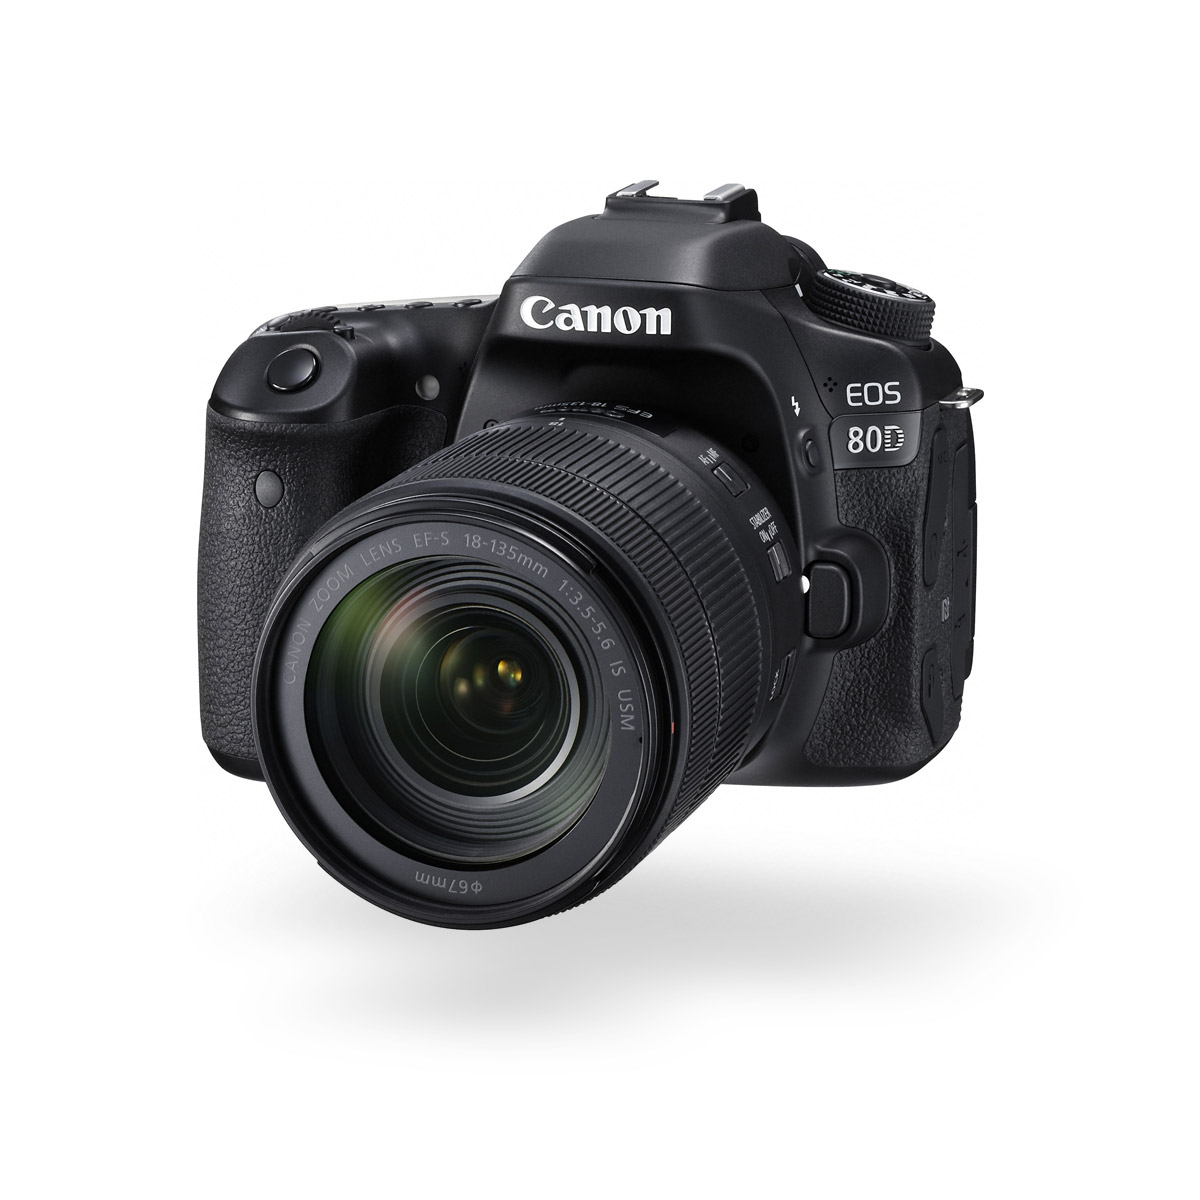 Camera Dslr Camera Australia cameras from canon take your photography to the next level view all dslr cameras